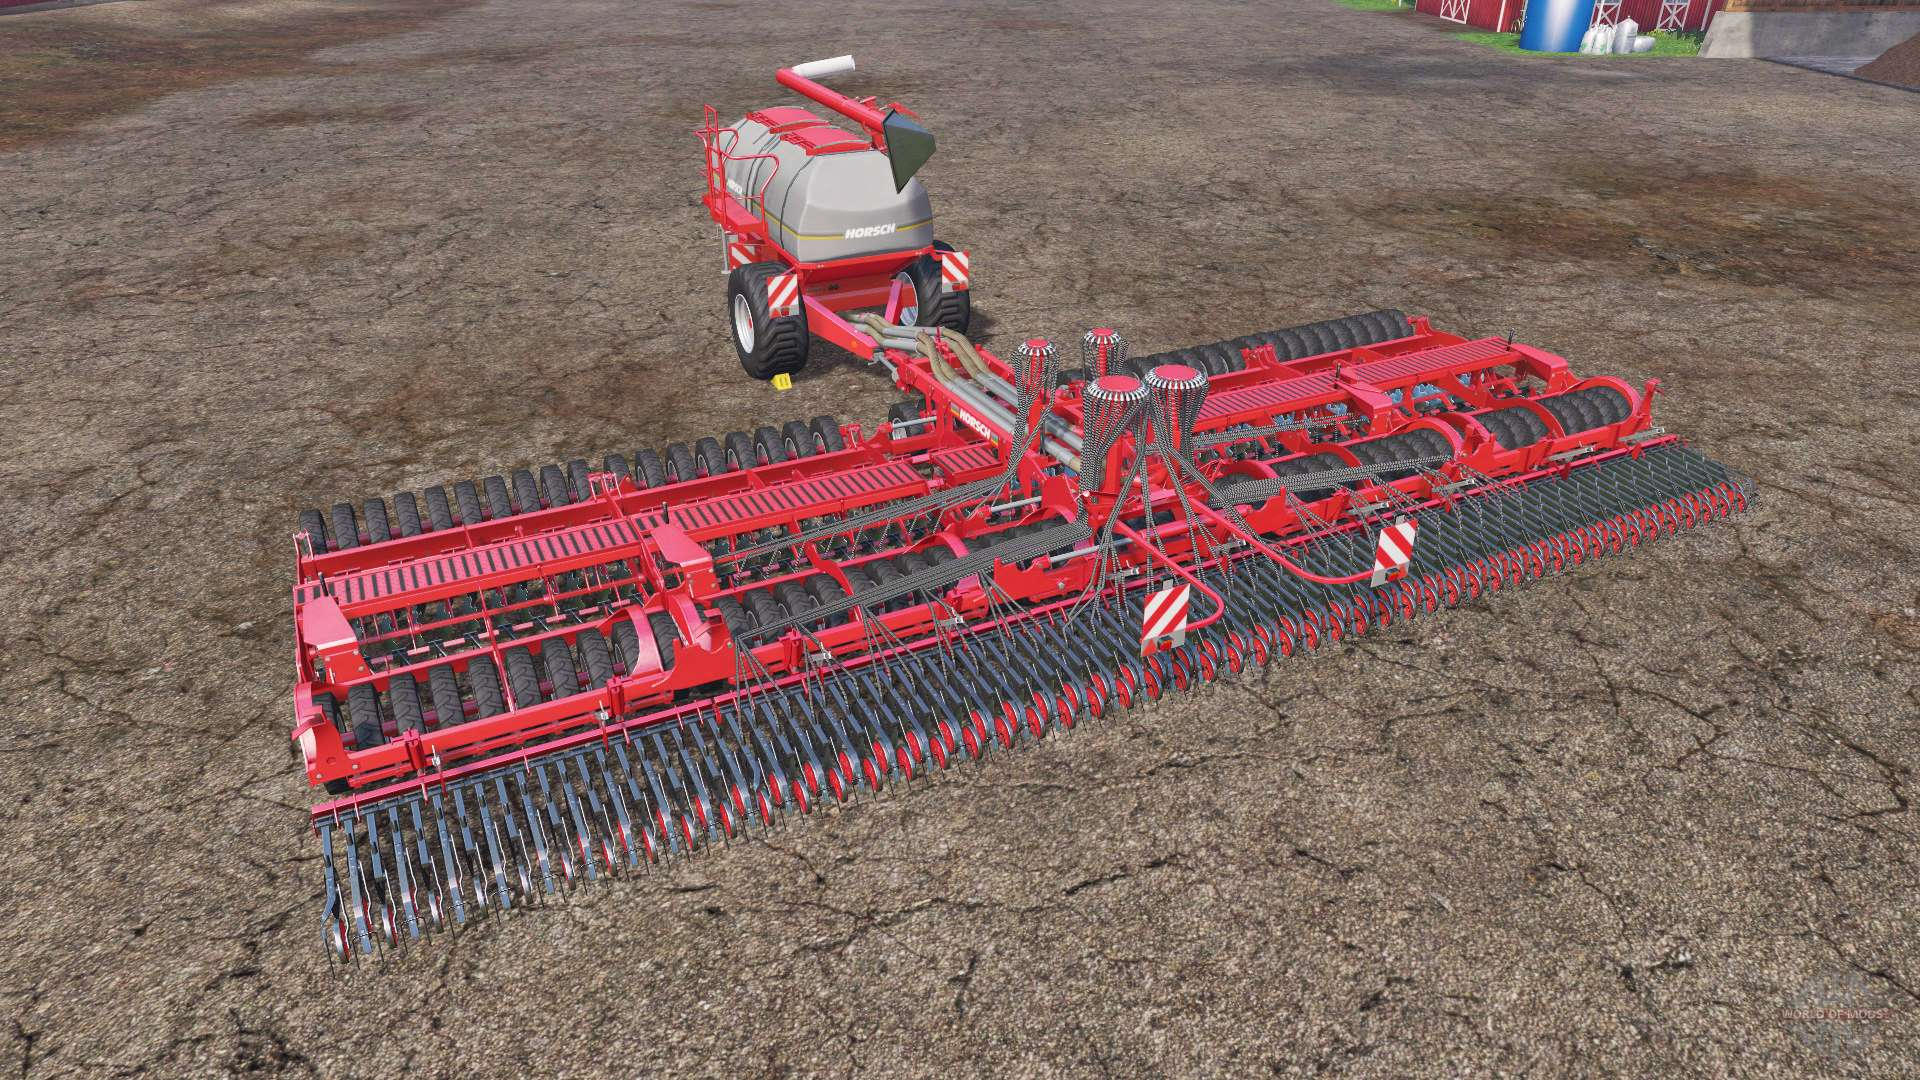 Farming simulator 15 v1 1 0 0 Cracked